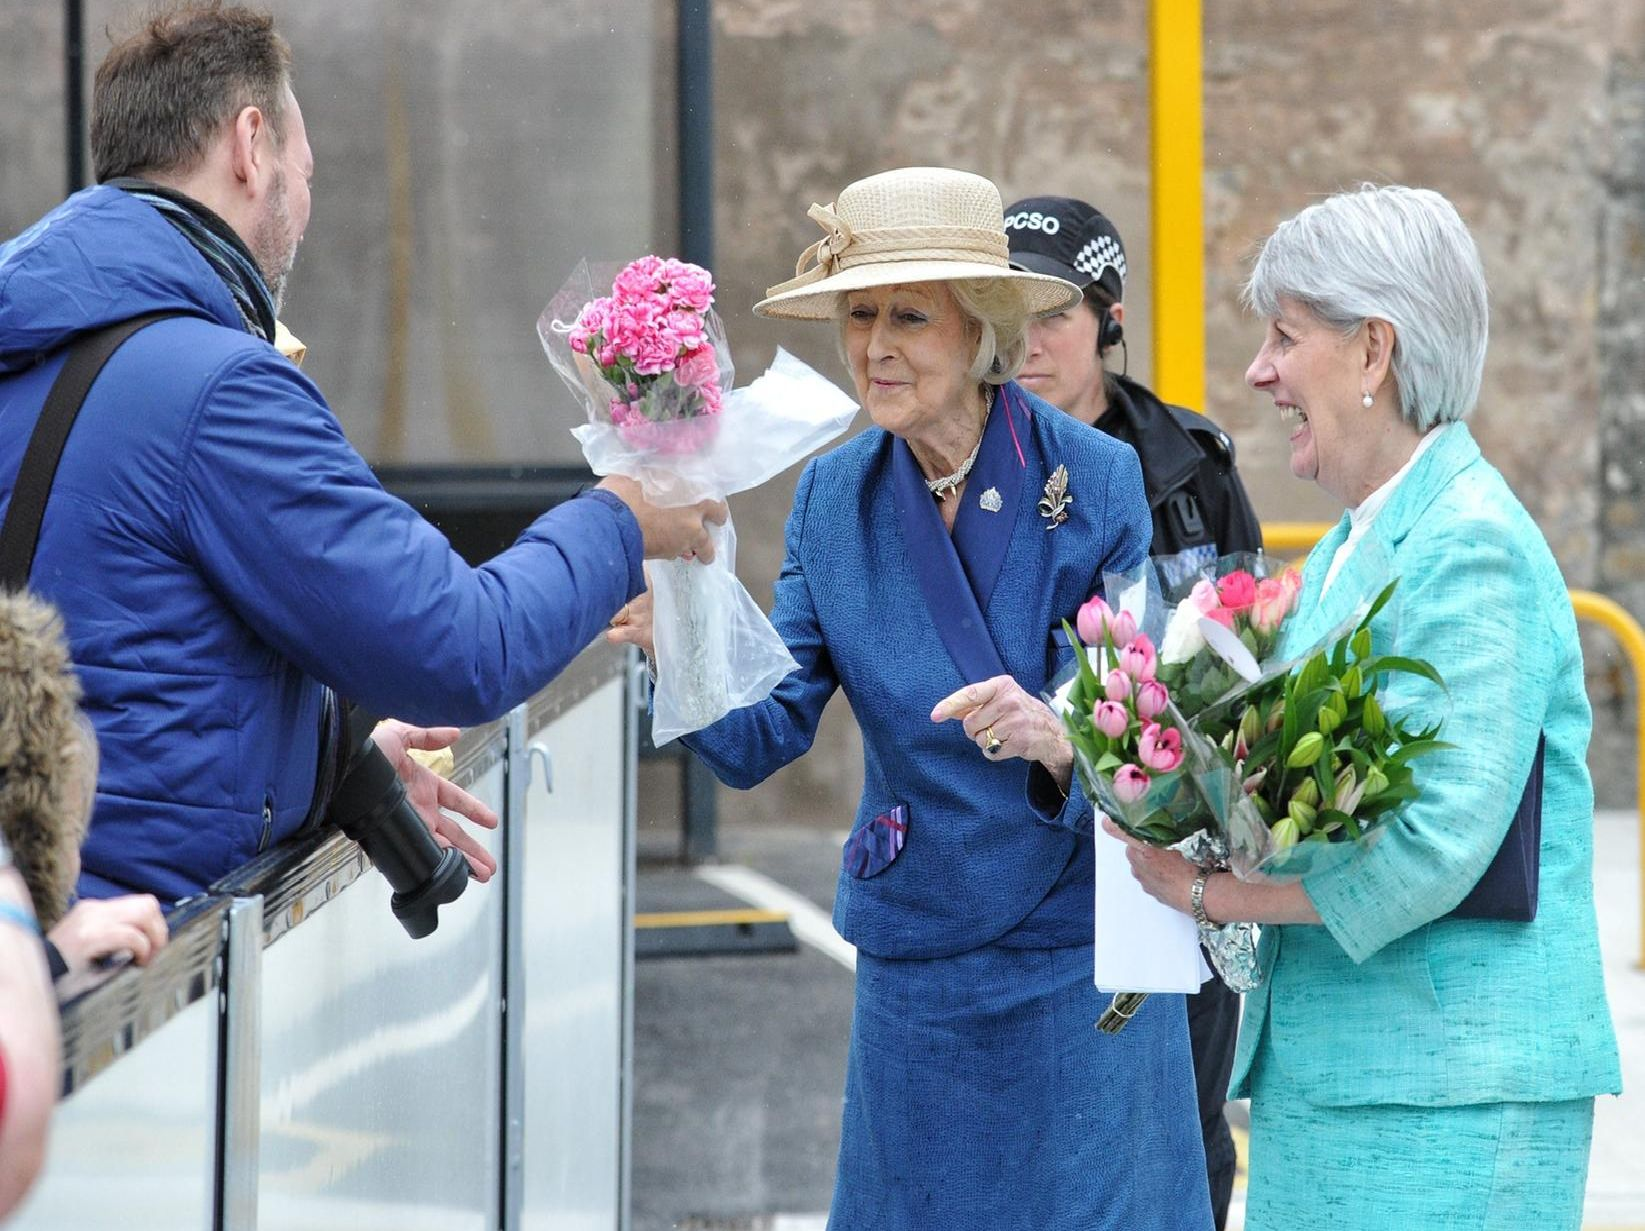 Princess Alexandra meets residents who gathered to see her at the opening of the community fire and ambulance station.